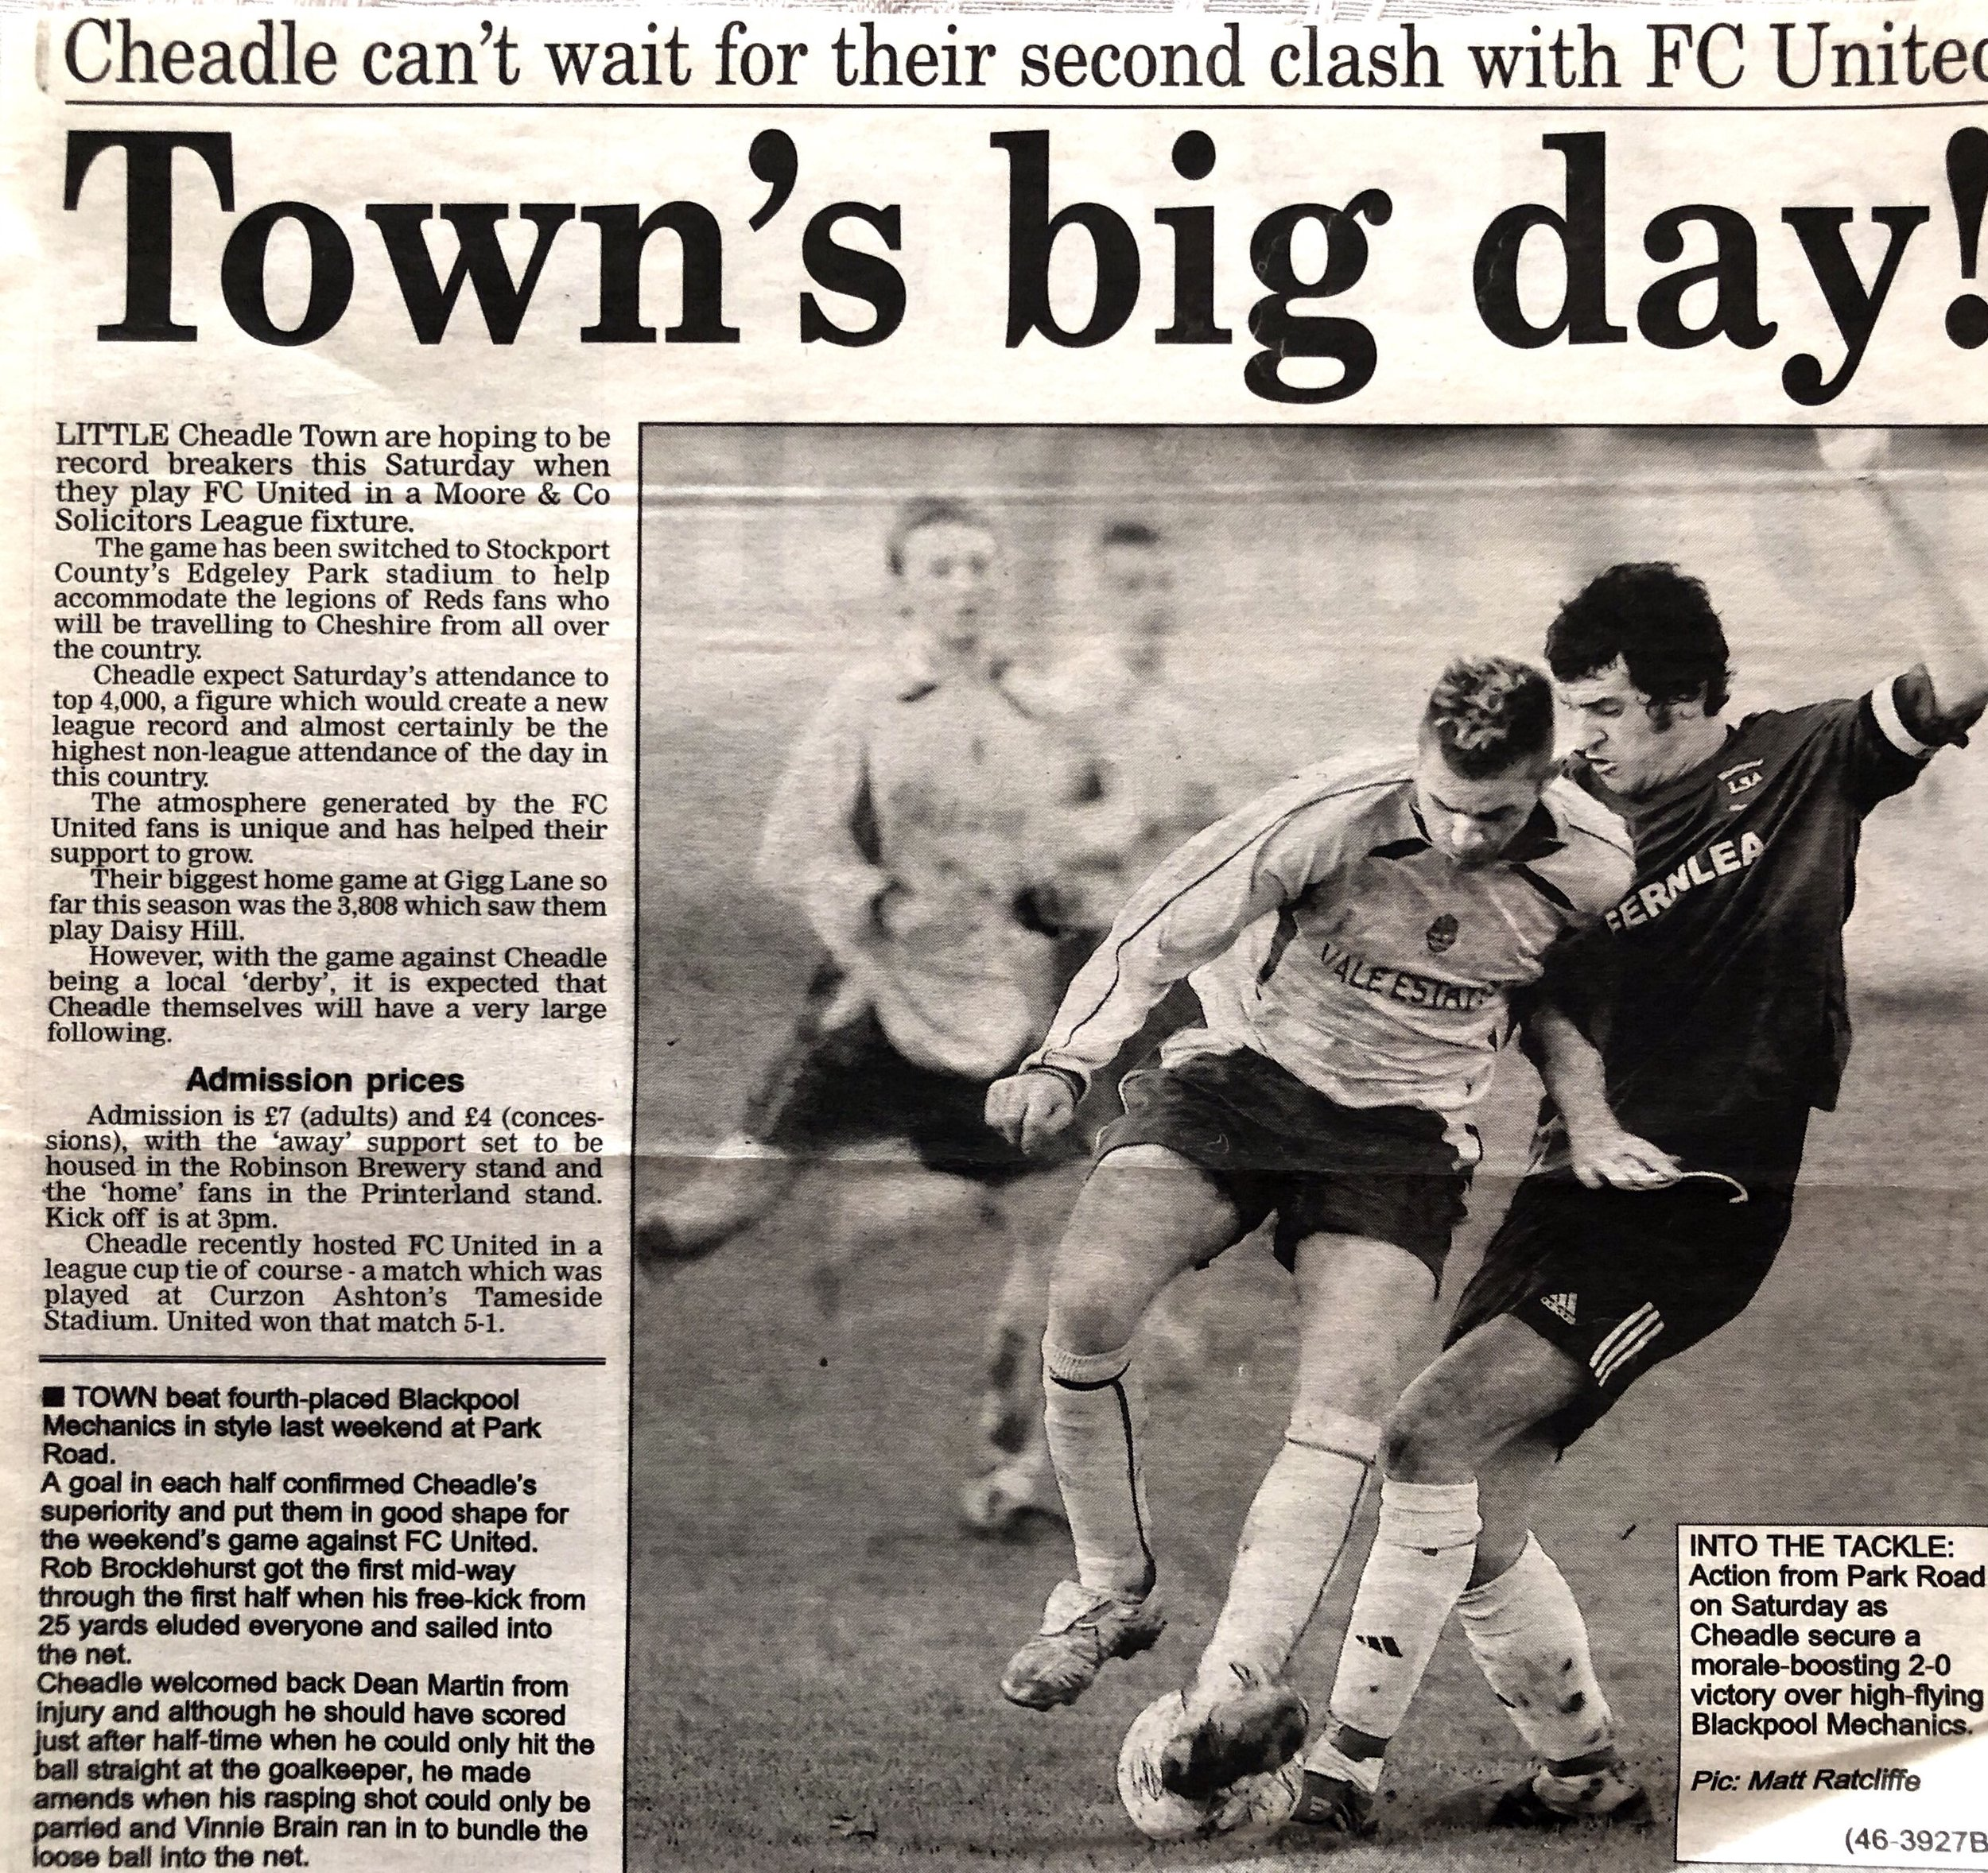 During the 2005-06 season the NWCFL Division One was graced with the presence of FC United of Manchester. This article was ahead of the first league clash between the two clubs.